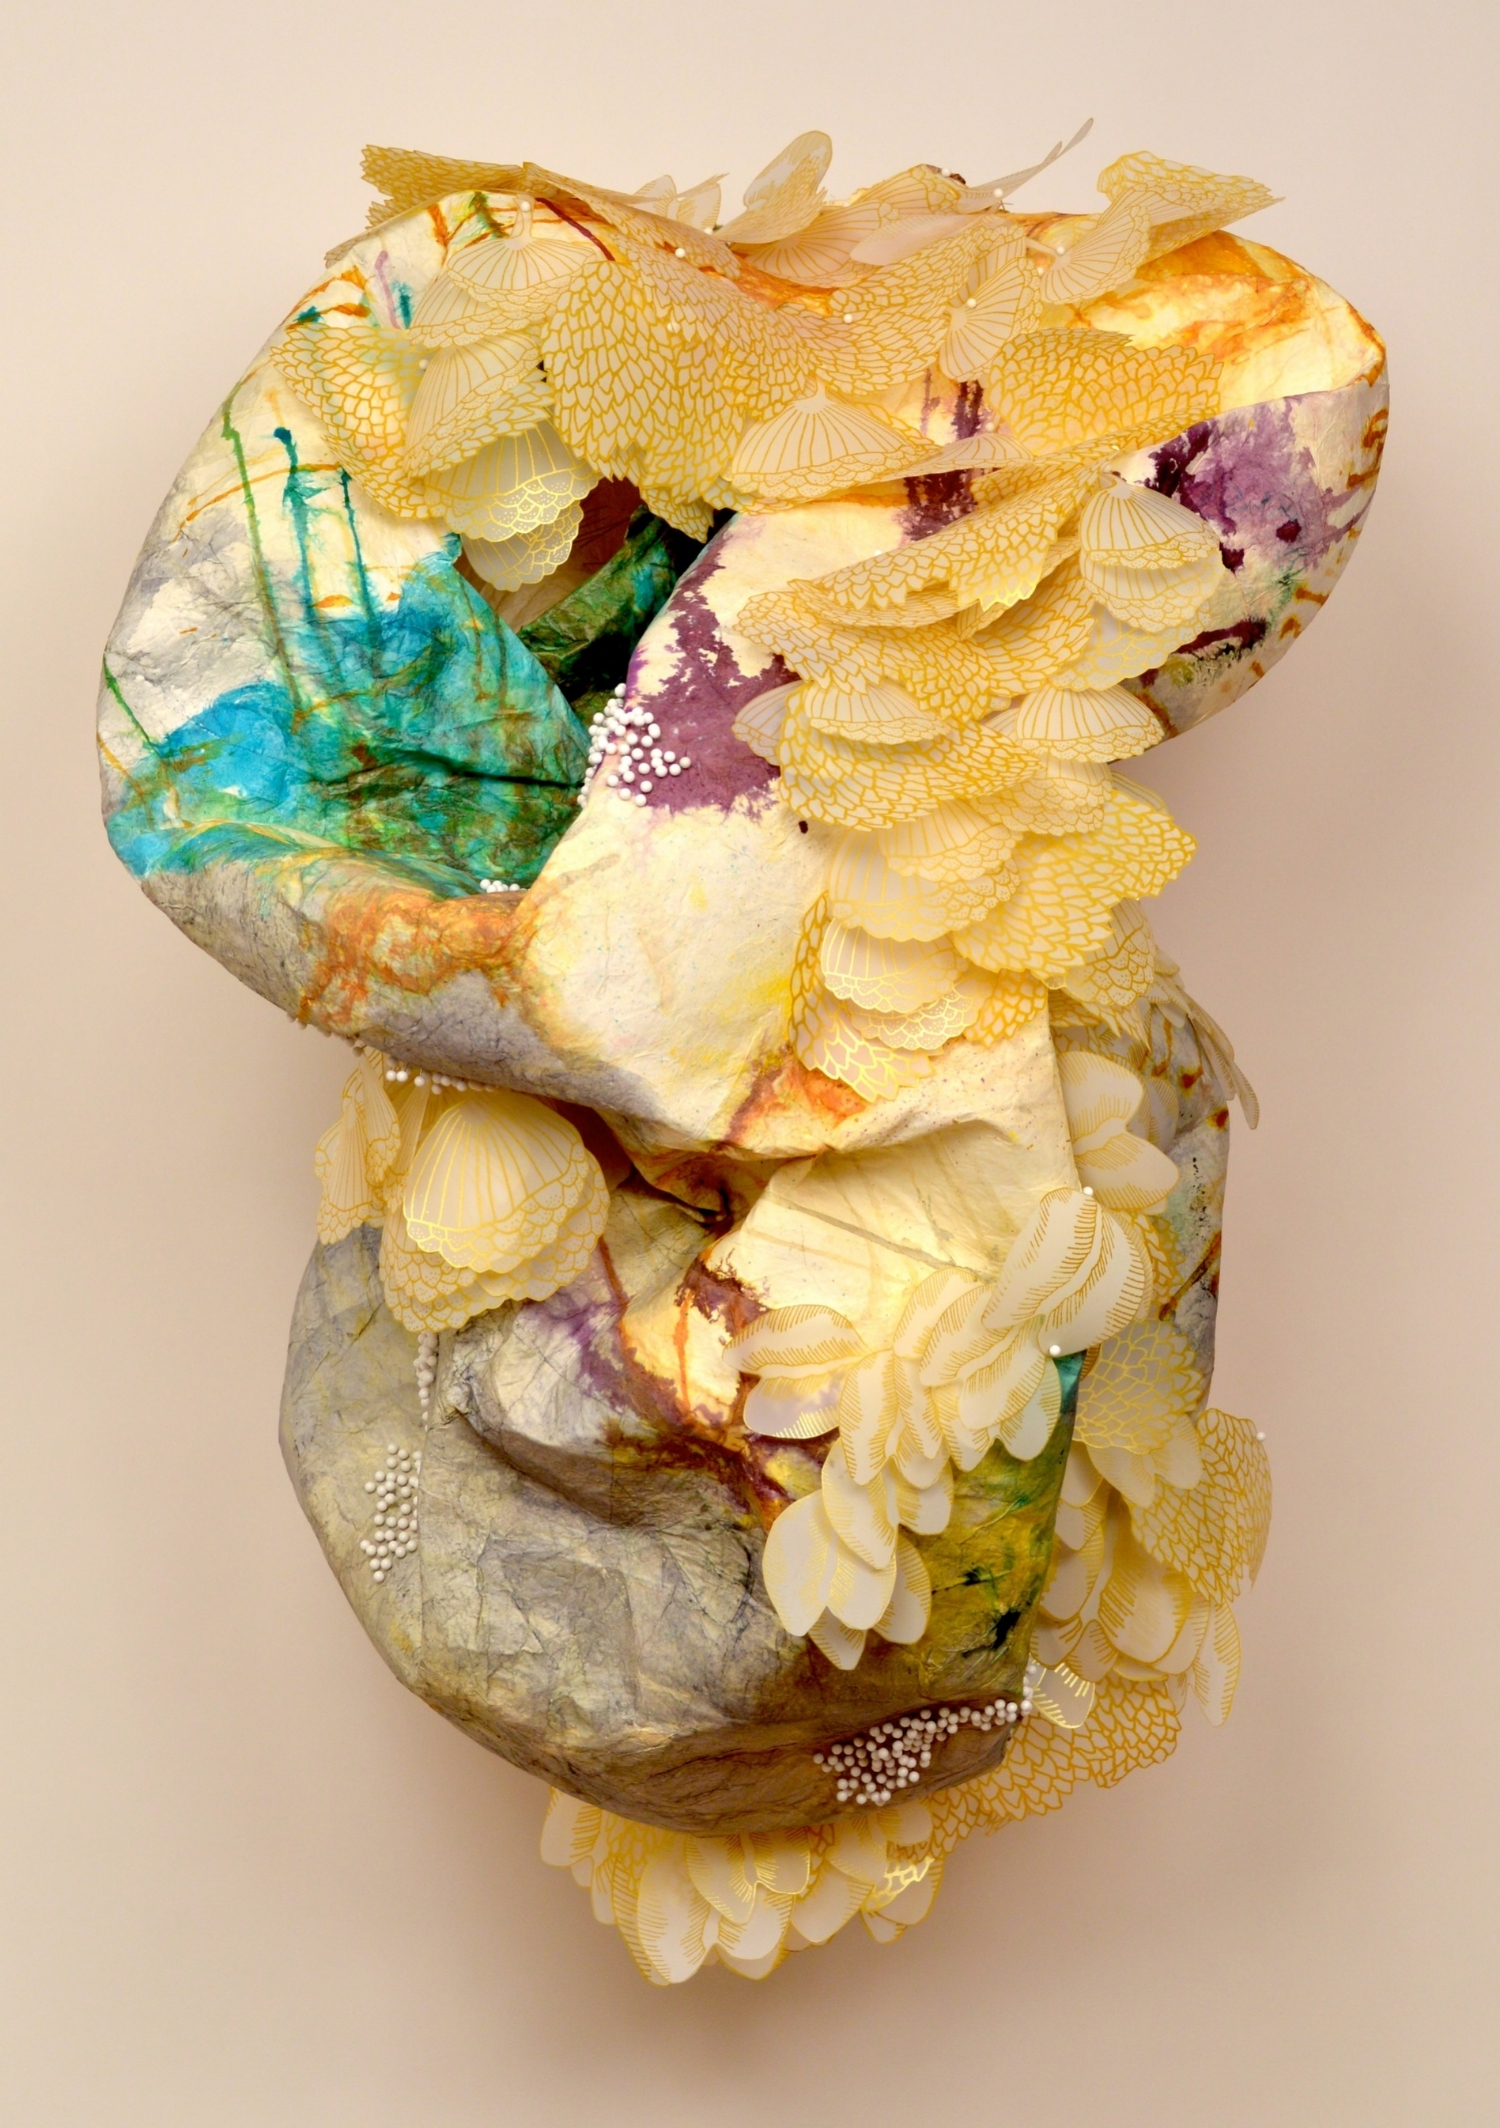 Solastalgic Dream by Terri Fidelak, 2015, mixed media, 4.5'x3.5'x2'